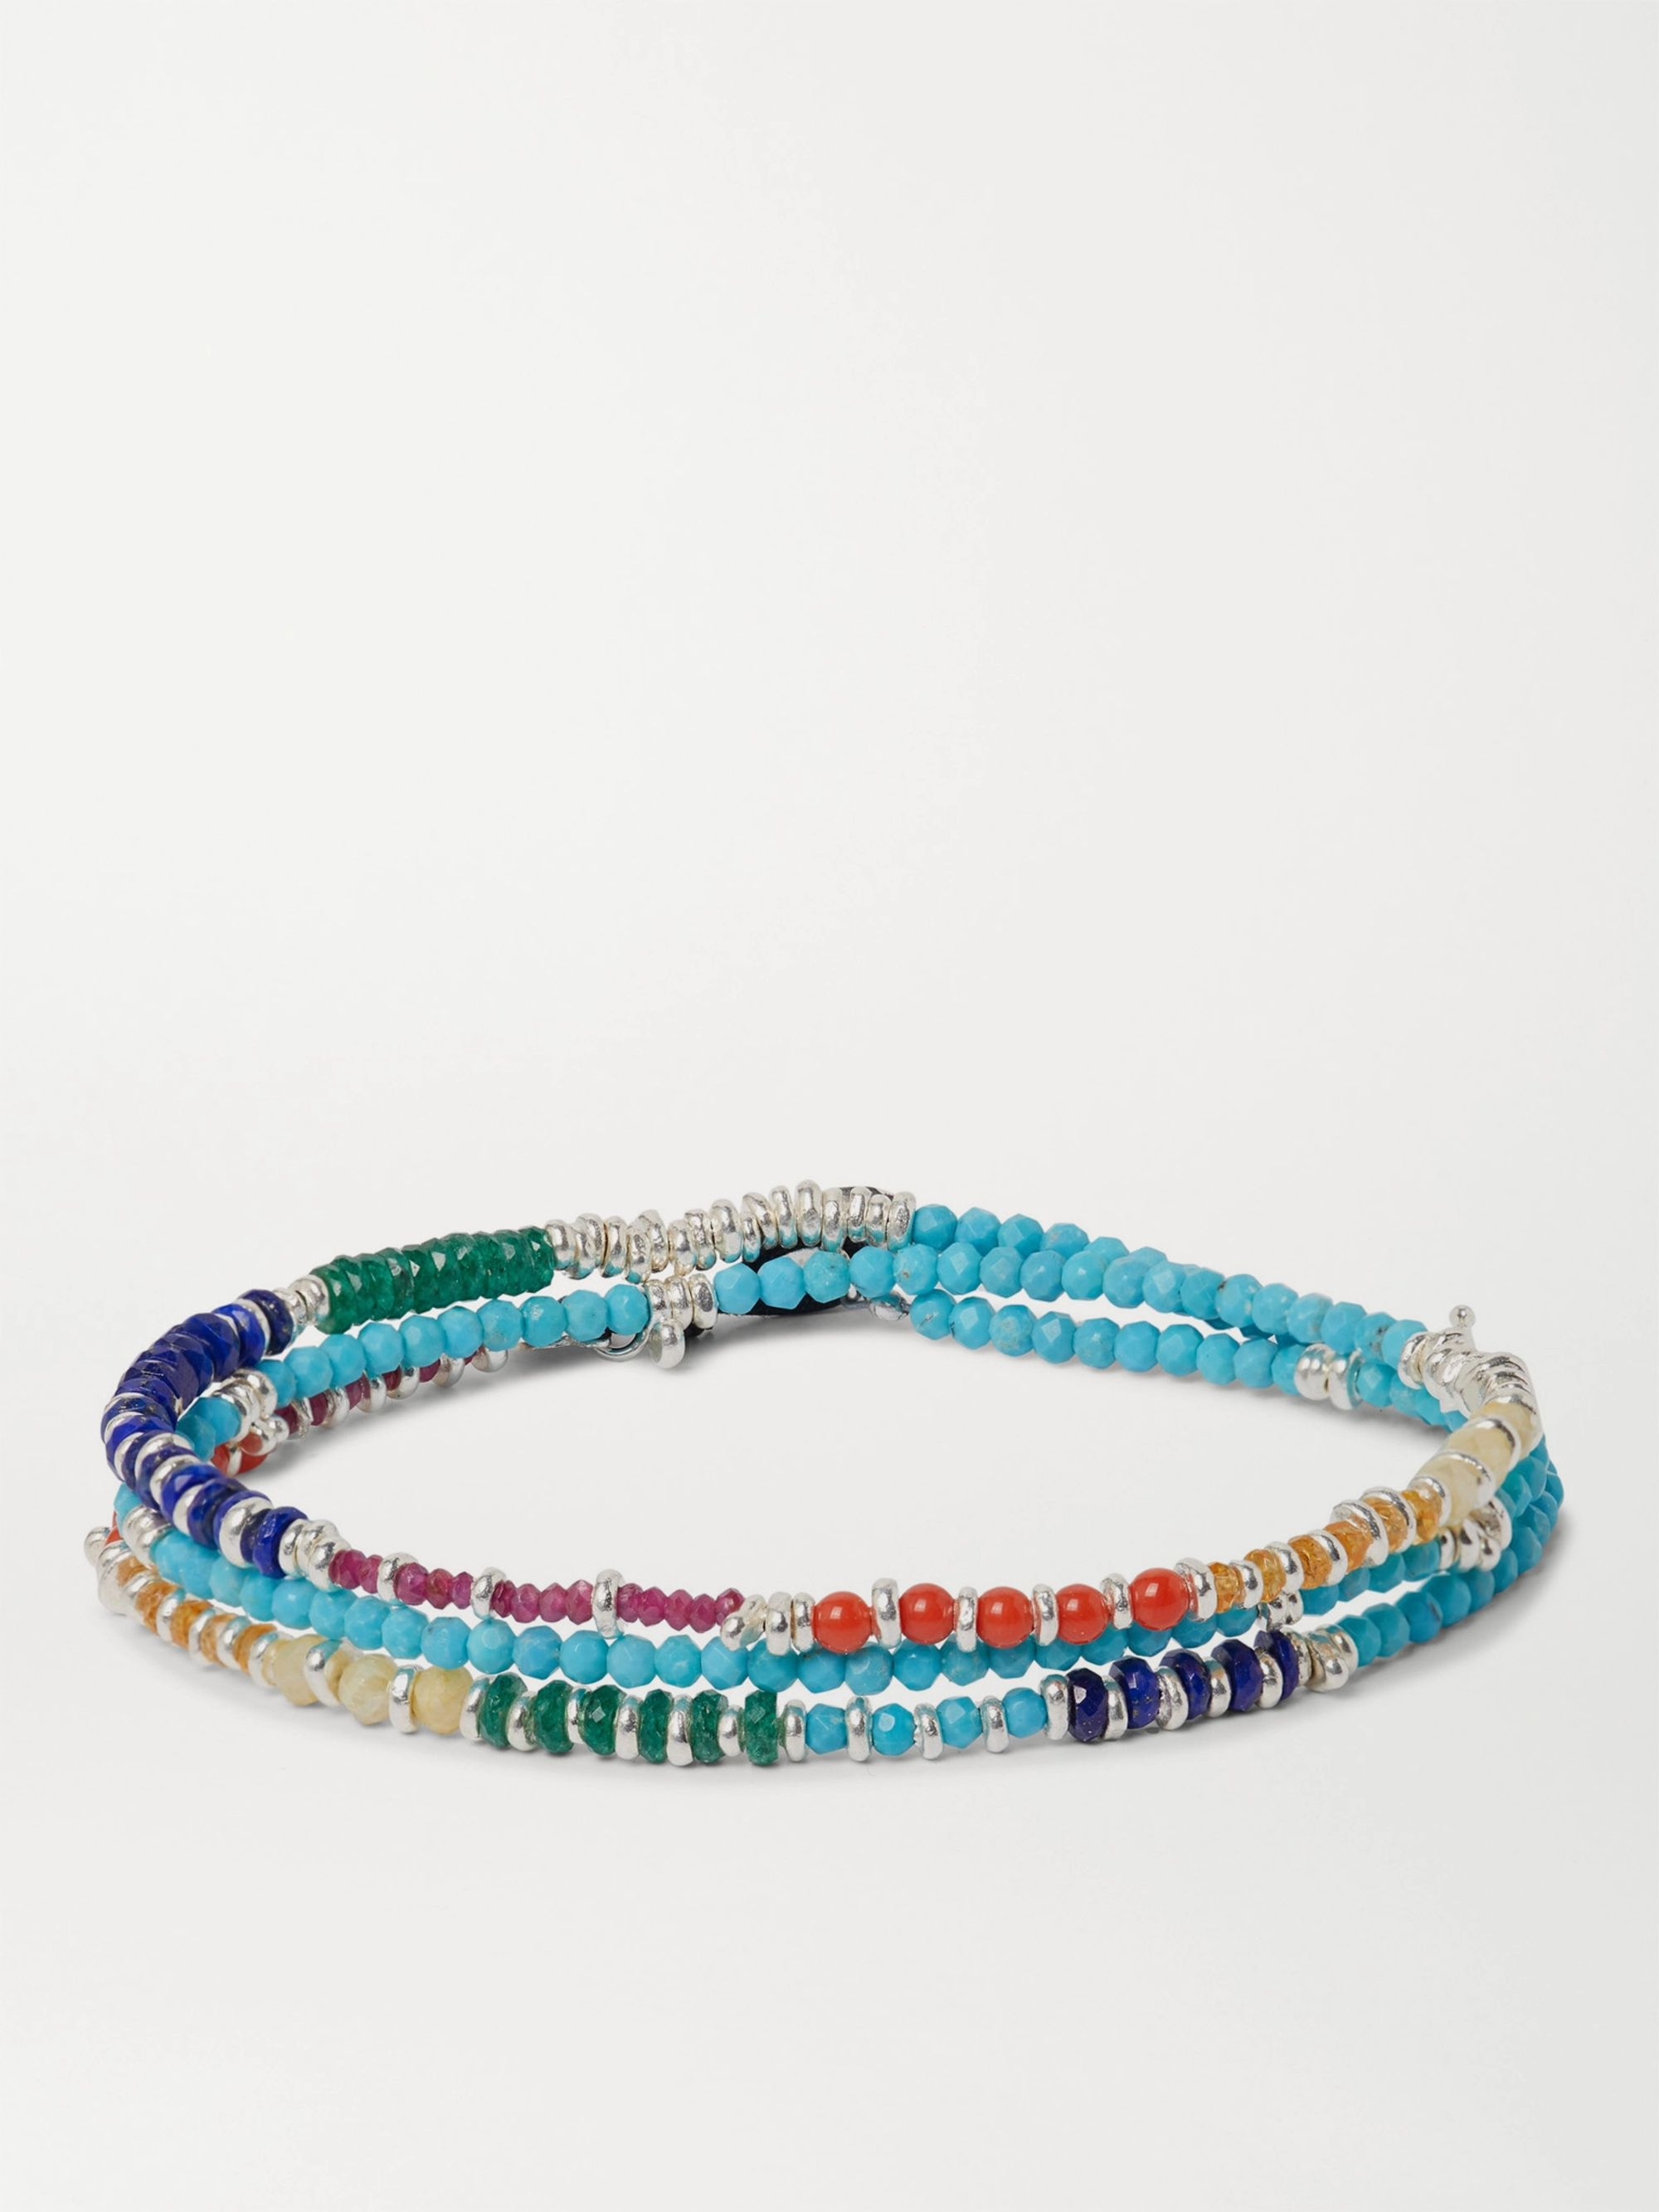 Peyote Bird Multi-Stone and Sterling Silver Beaded Wrap Bracelet,Blue